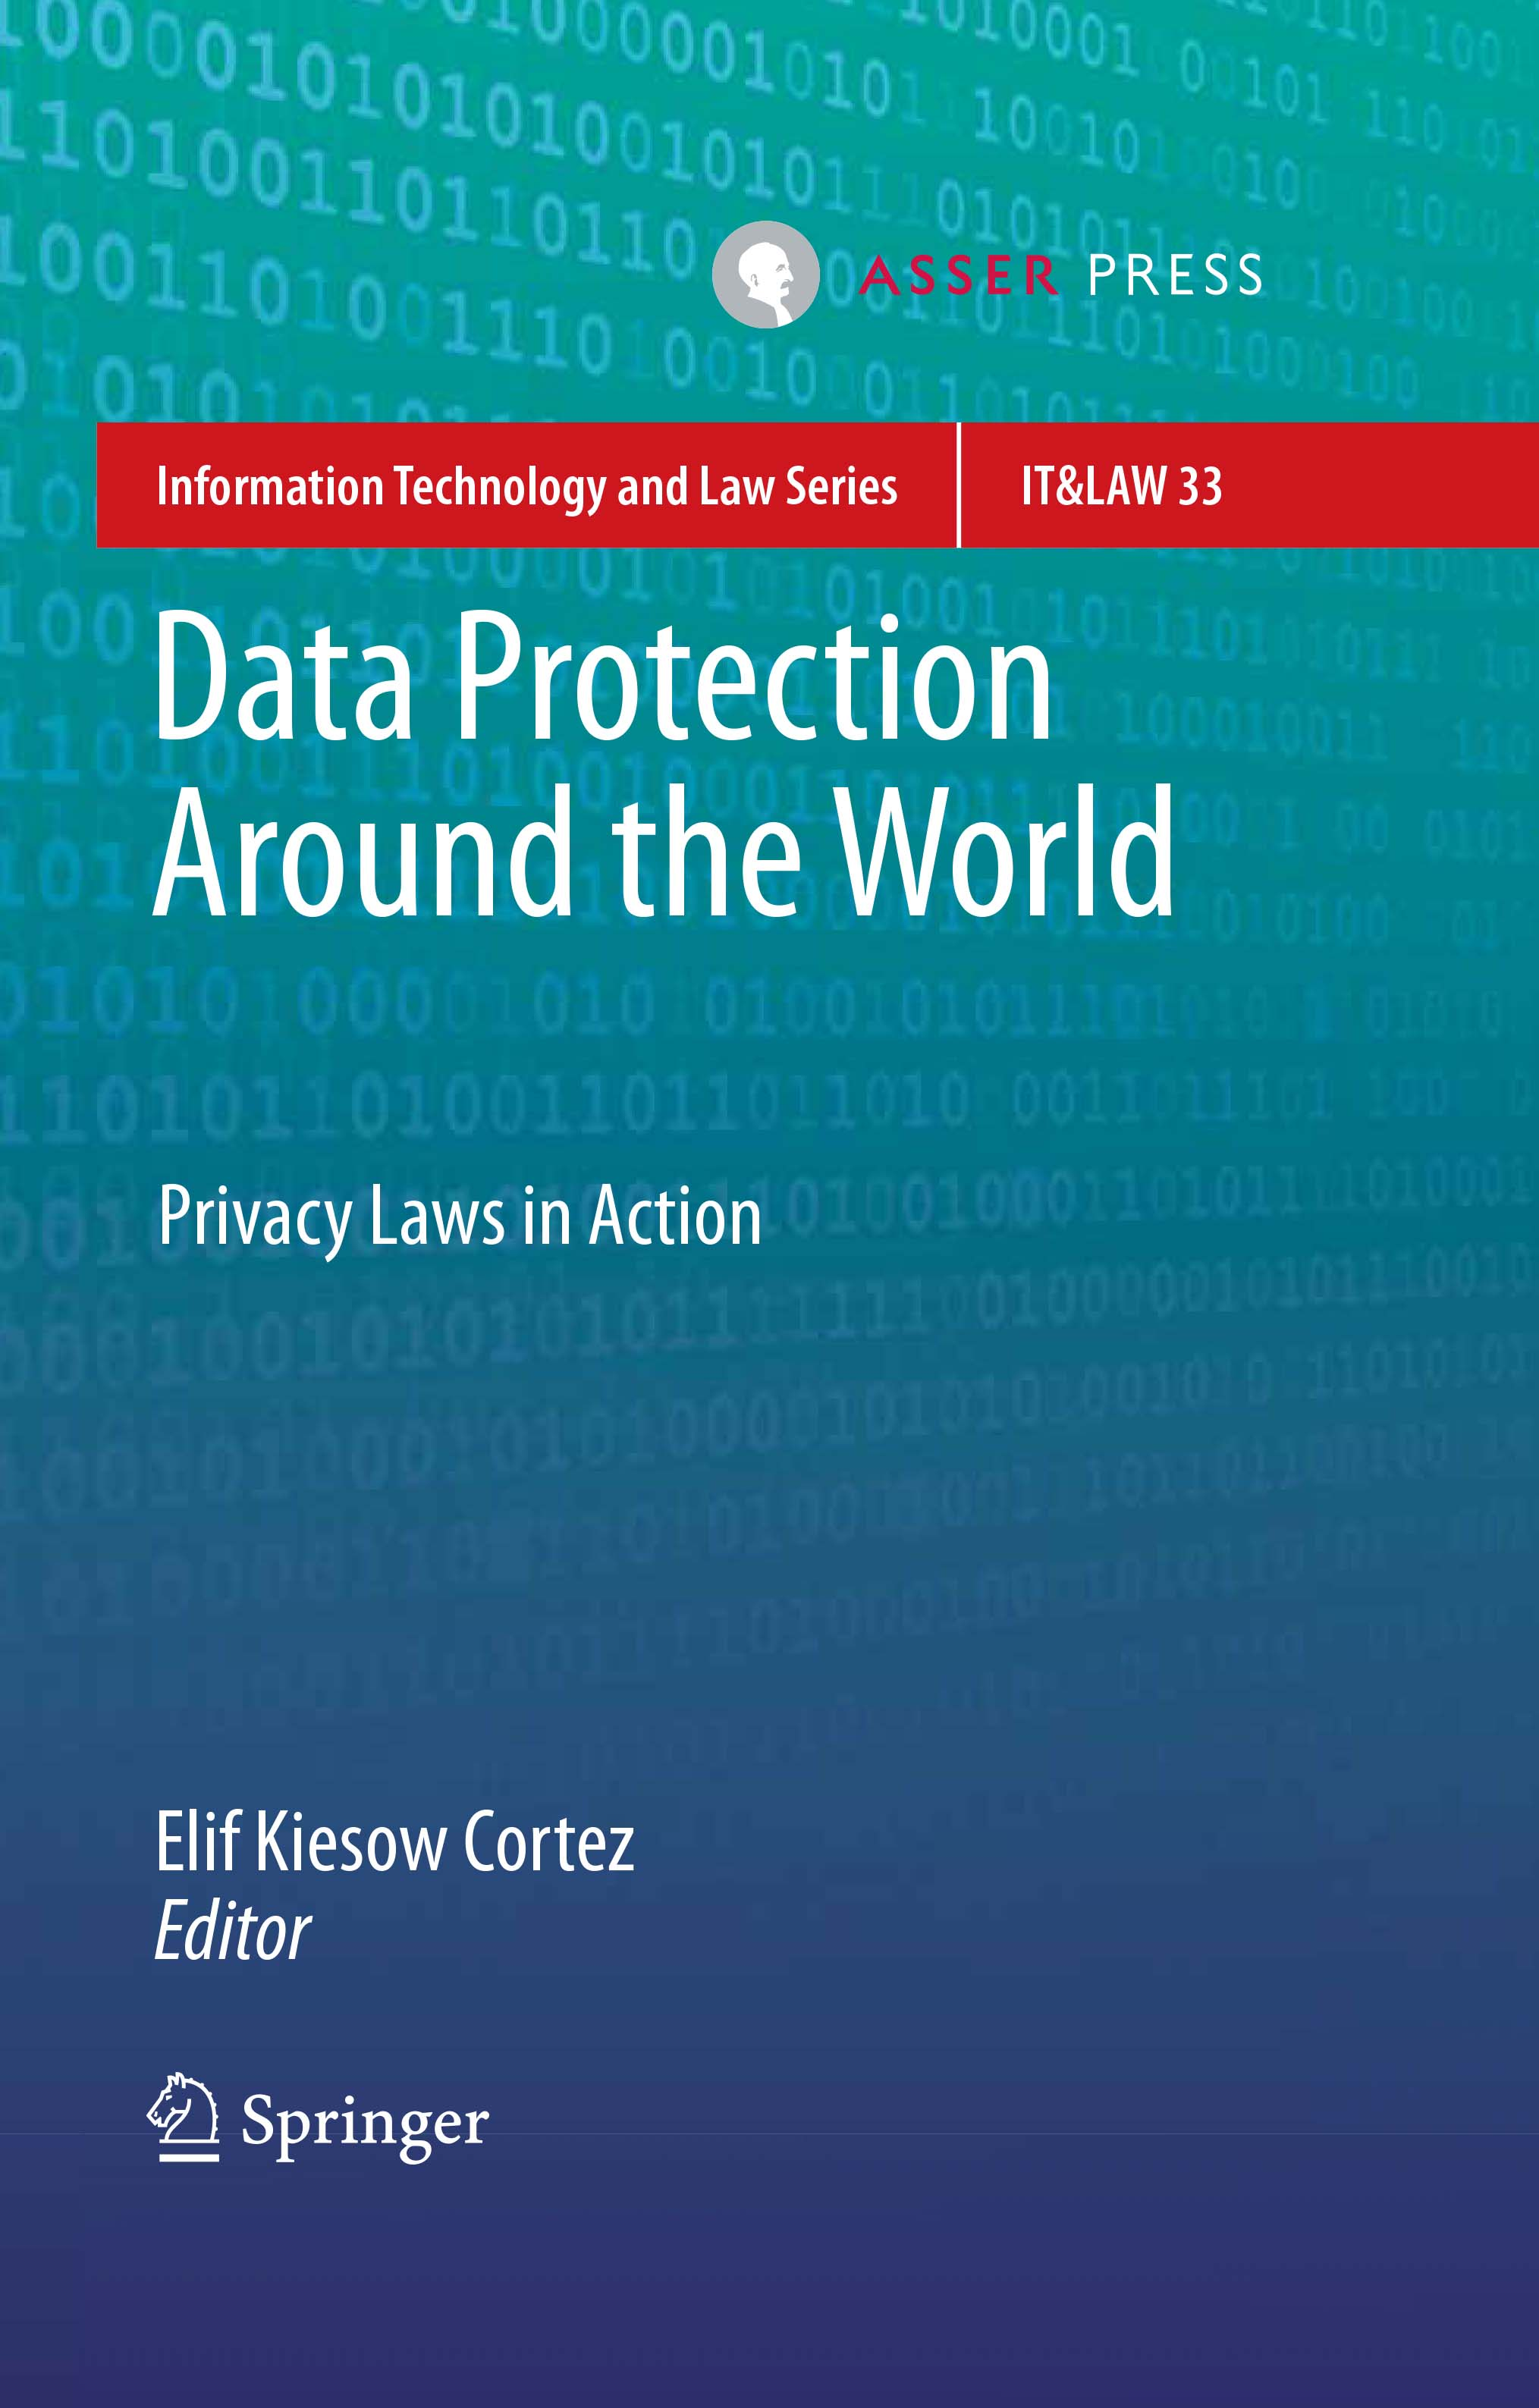 Data Protection Around the World - Privacy Laws in Action